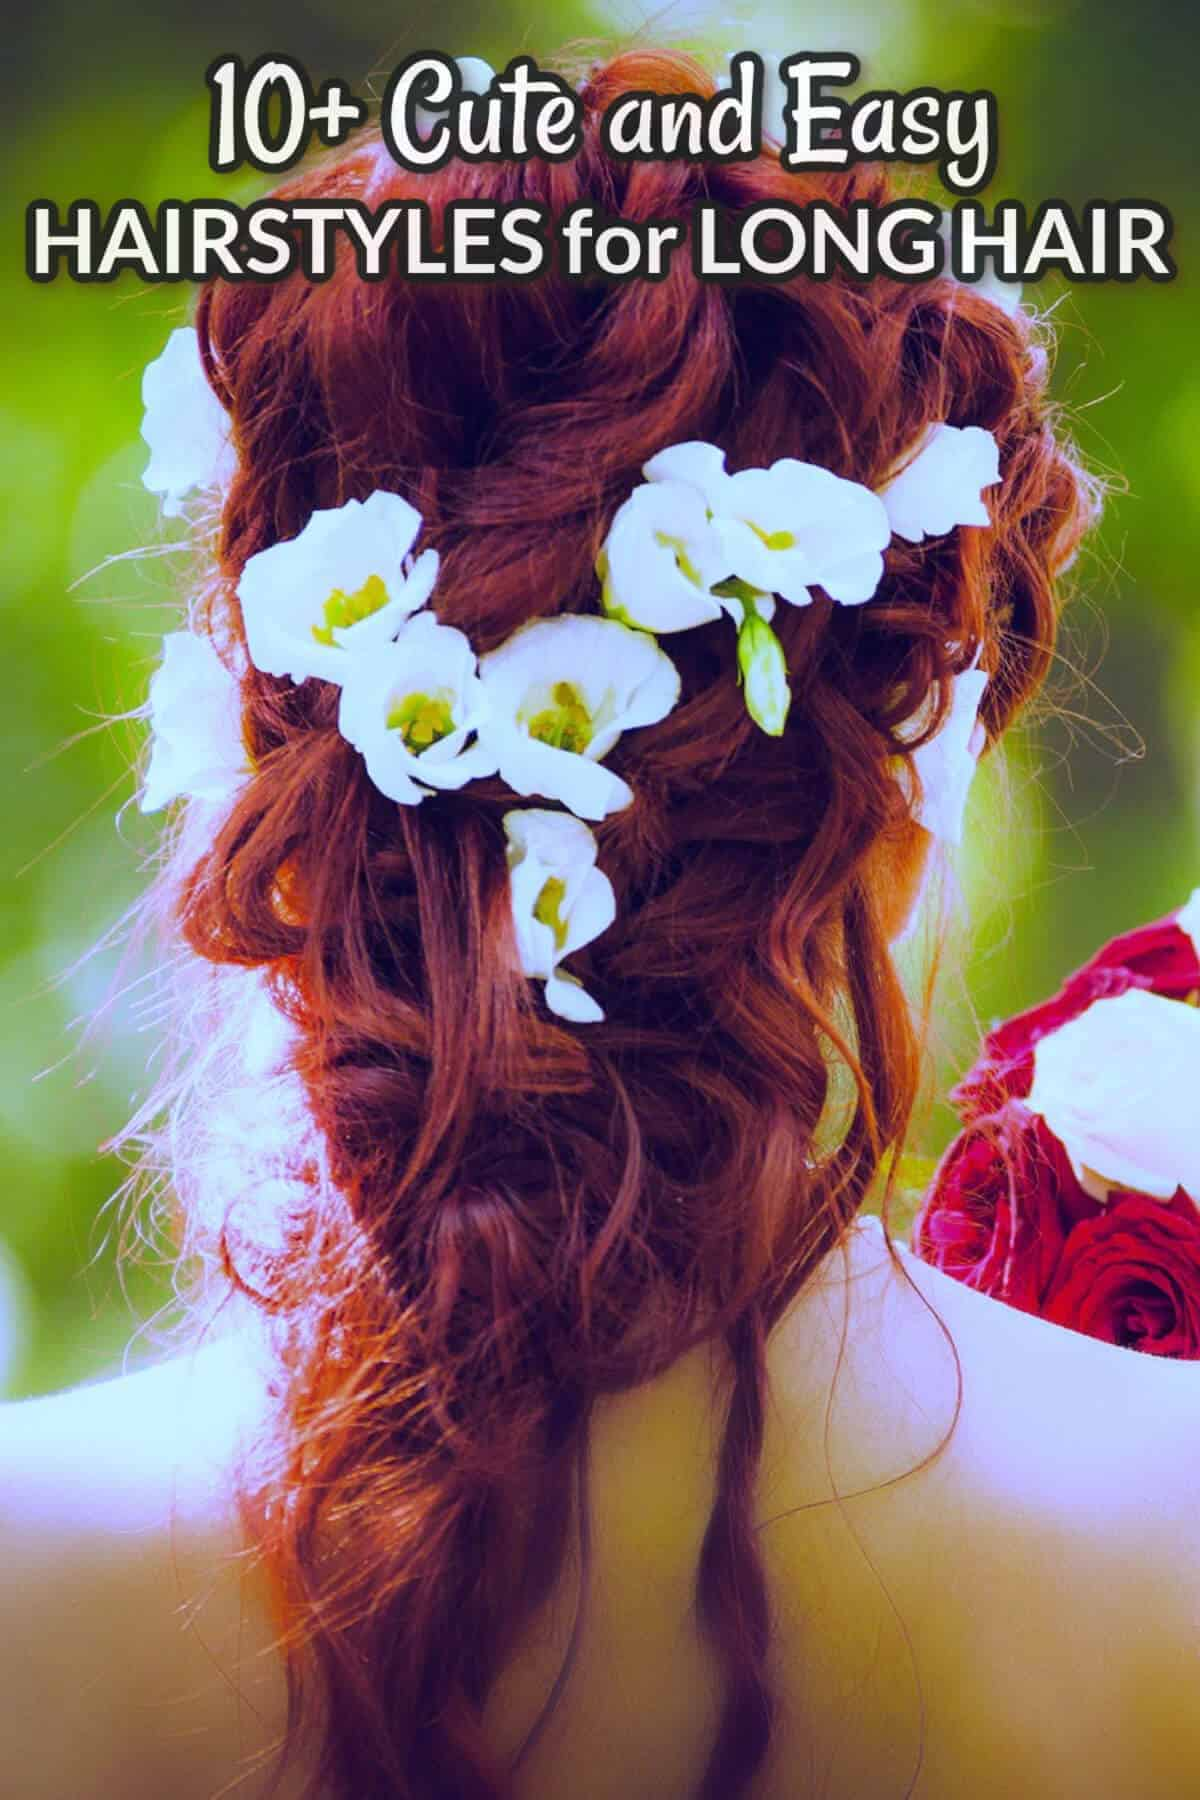 hairstyles for long hair cover image